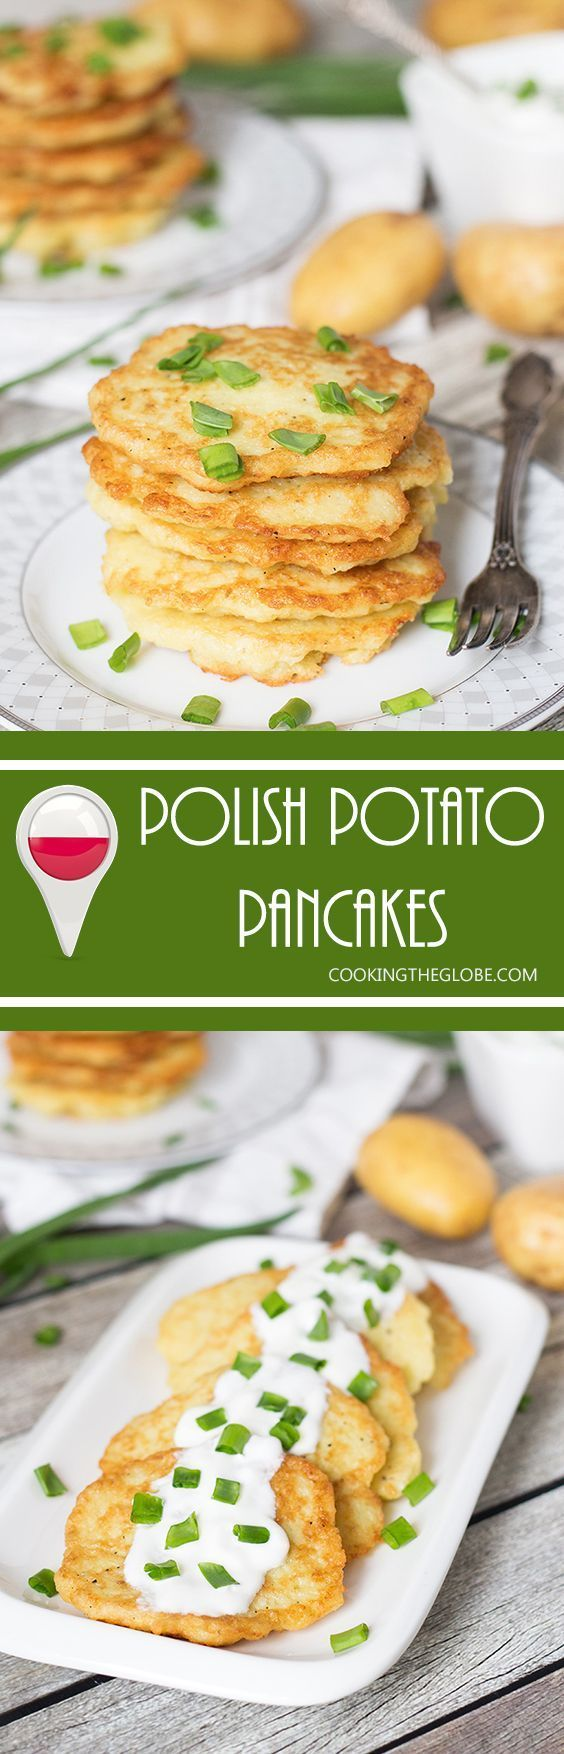 These Polish Potato Pancakes are amazingly delicious and require only few simple ingredients to make! | cookingtheglobe.com (Gluten Free Recipes Casserole)